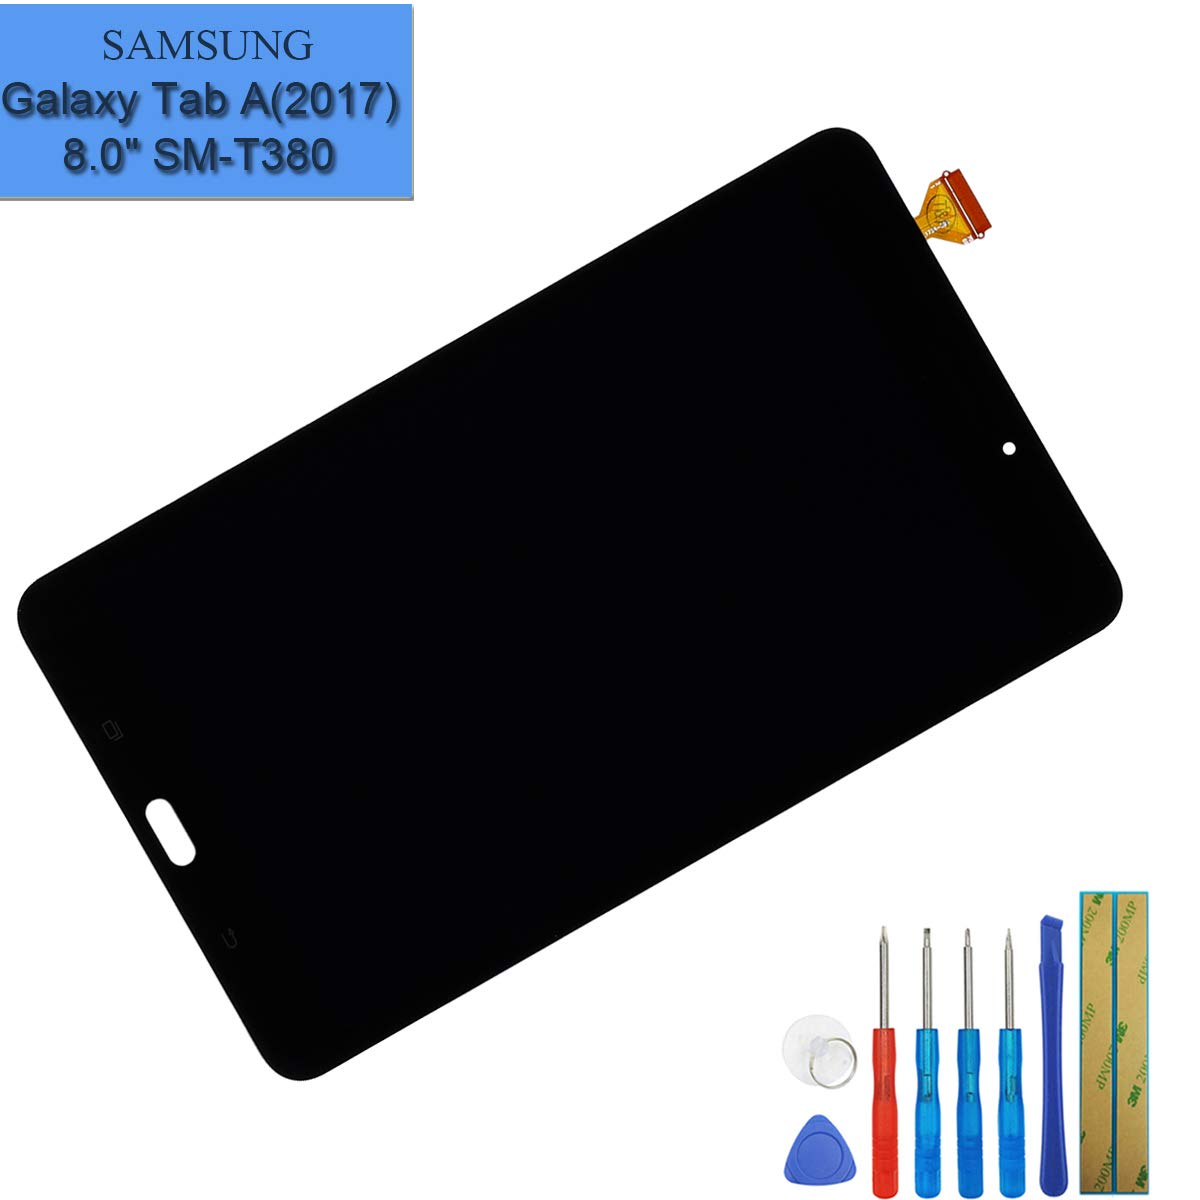 LCD Touch Screen Display Assembly Digitizer Compatible with Samsung Galaxy Tab A 8.0 2017 WiFi Version SM-T380 (NOT for LTE SM-T385)+ Tools